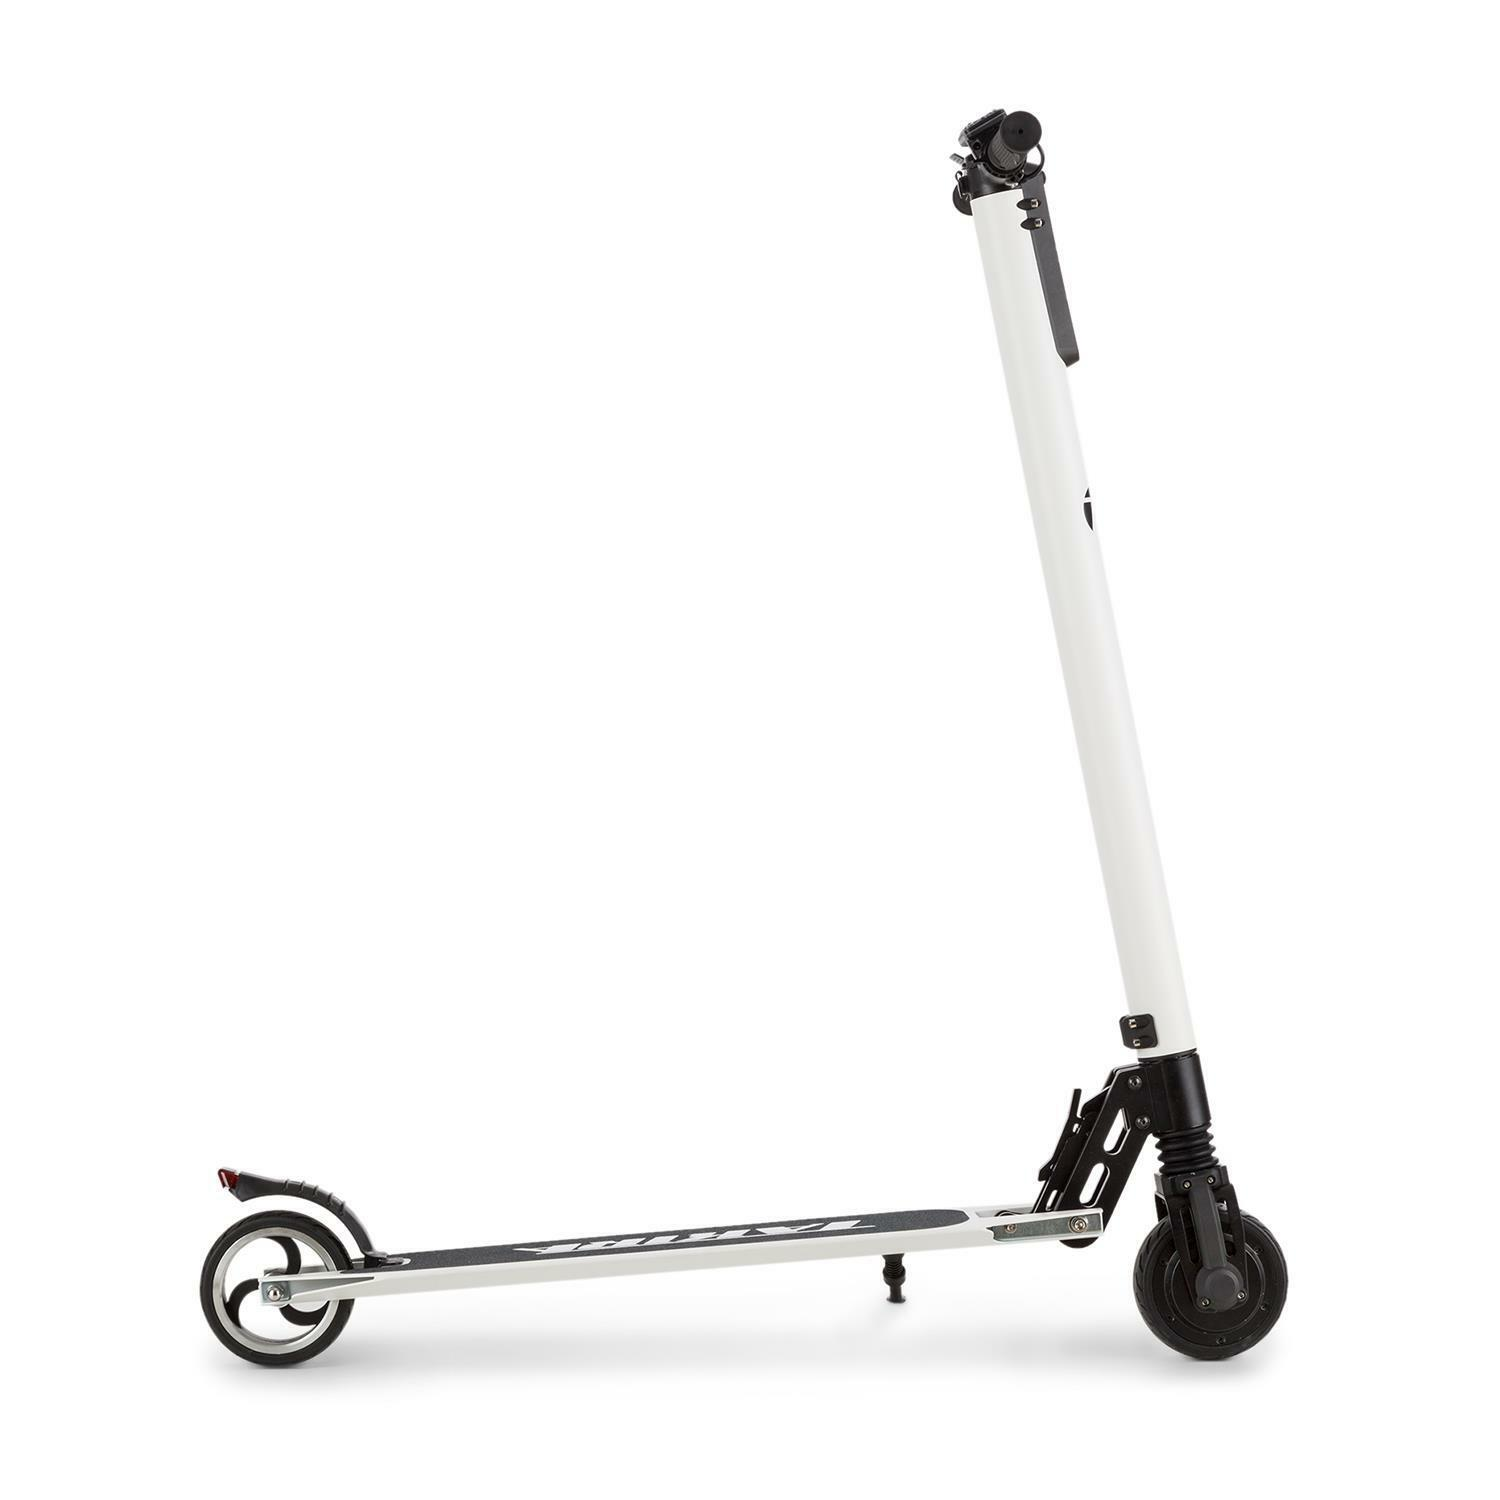 Trottinette électrique E- Scooter 250 adulte pliable 250 Scooter W max 28 km/h Tube alu 77f858